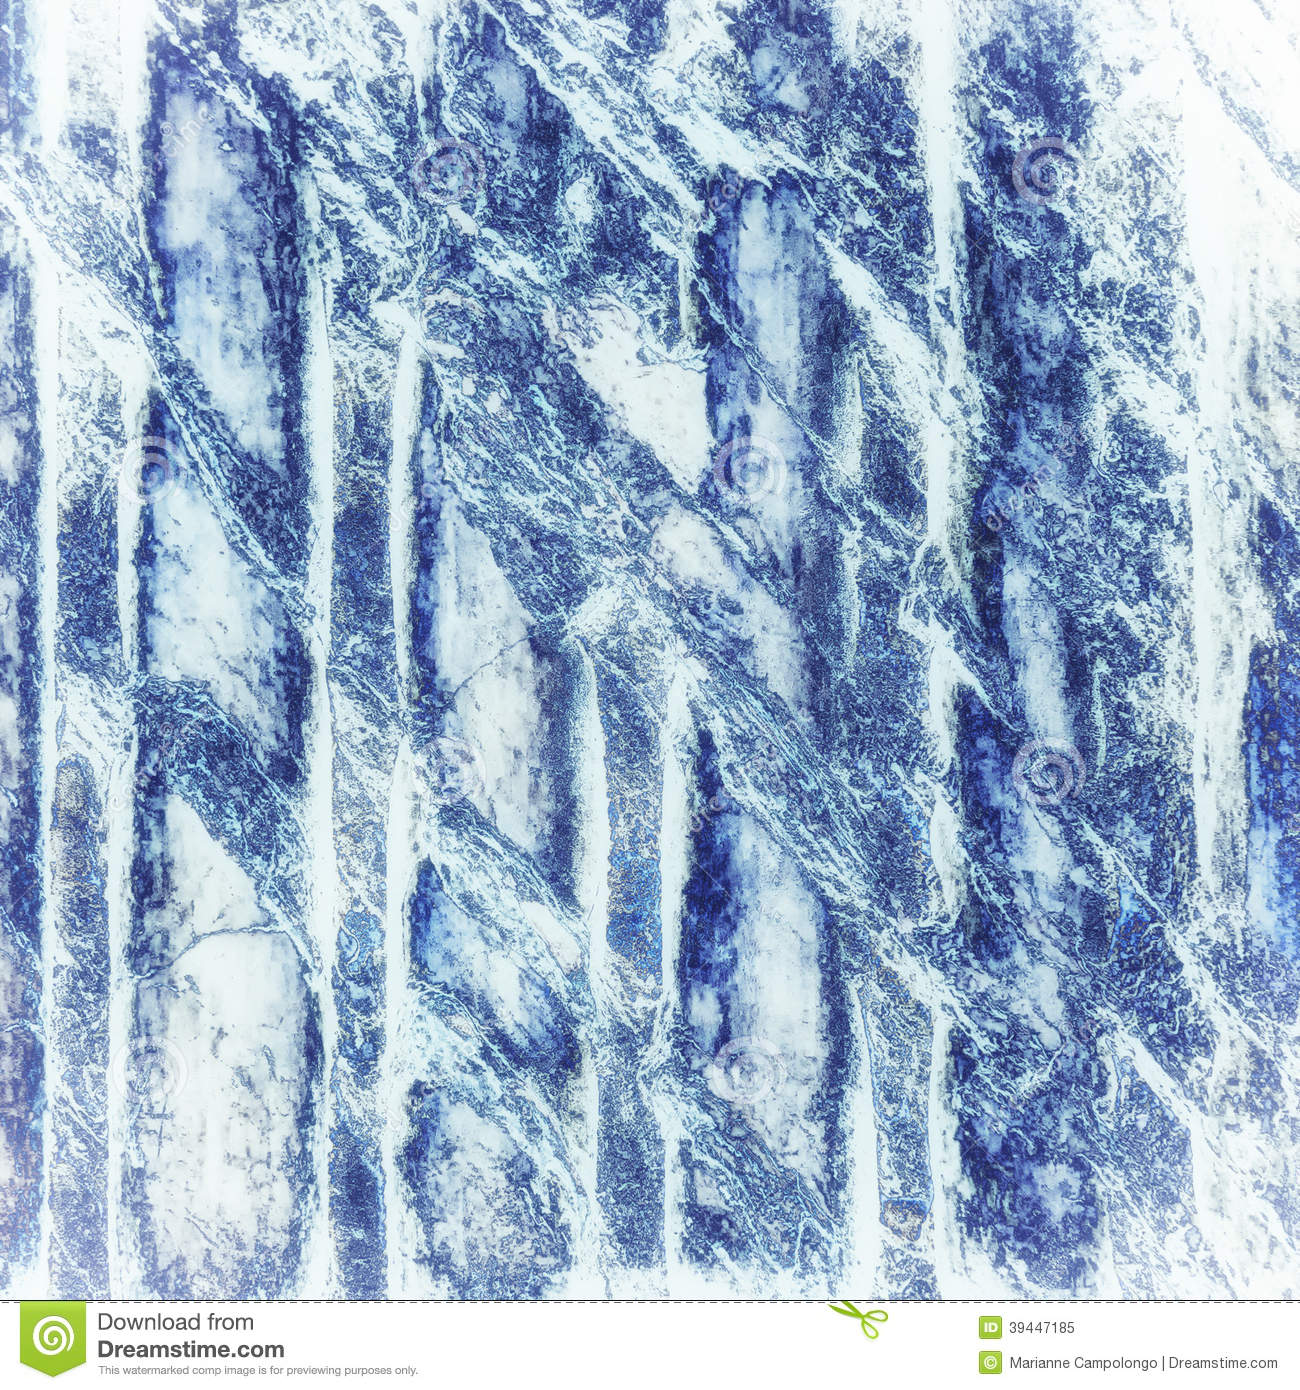 Blue And White Marble : Blue marble abstract background texture stock image